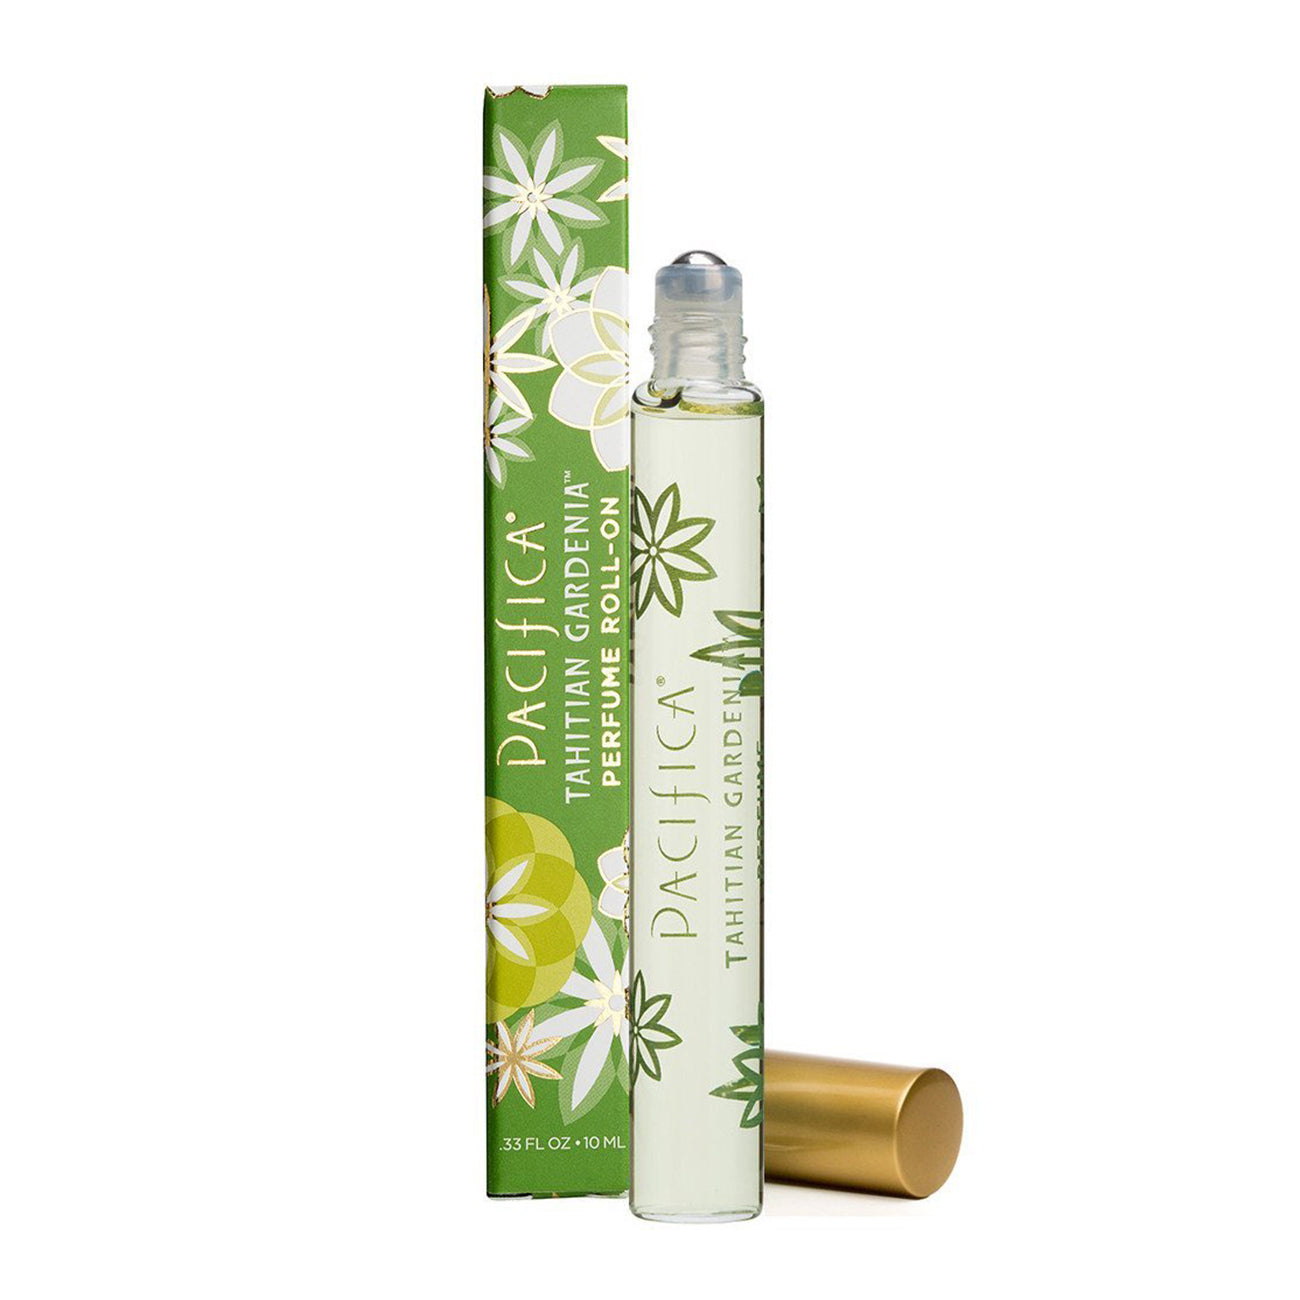 Tahitian Gardenia Roll-on Perfume